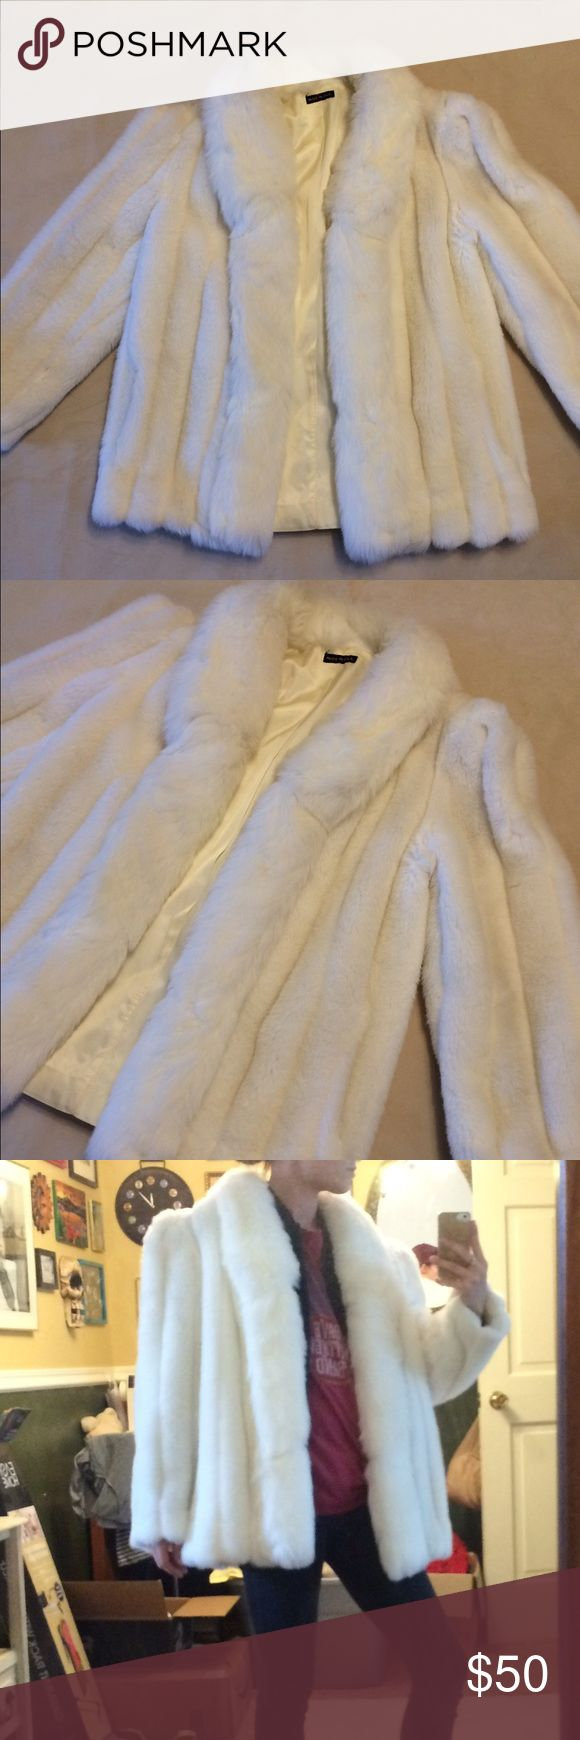 White FAUX fur coat (really tho, it's fake) Pure white, faux fur coat; doesn't close, has pockets, silk-like lining--great statement coat! WARM! Best fits a Small to Medium🥂✈️😎 Jackets & Coats